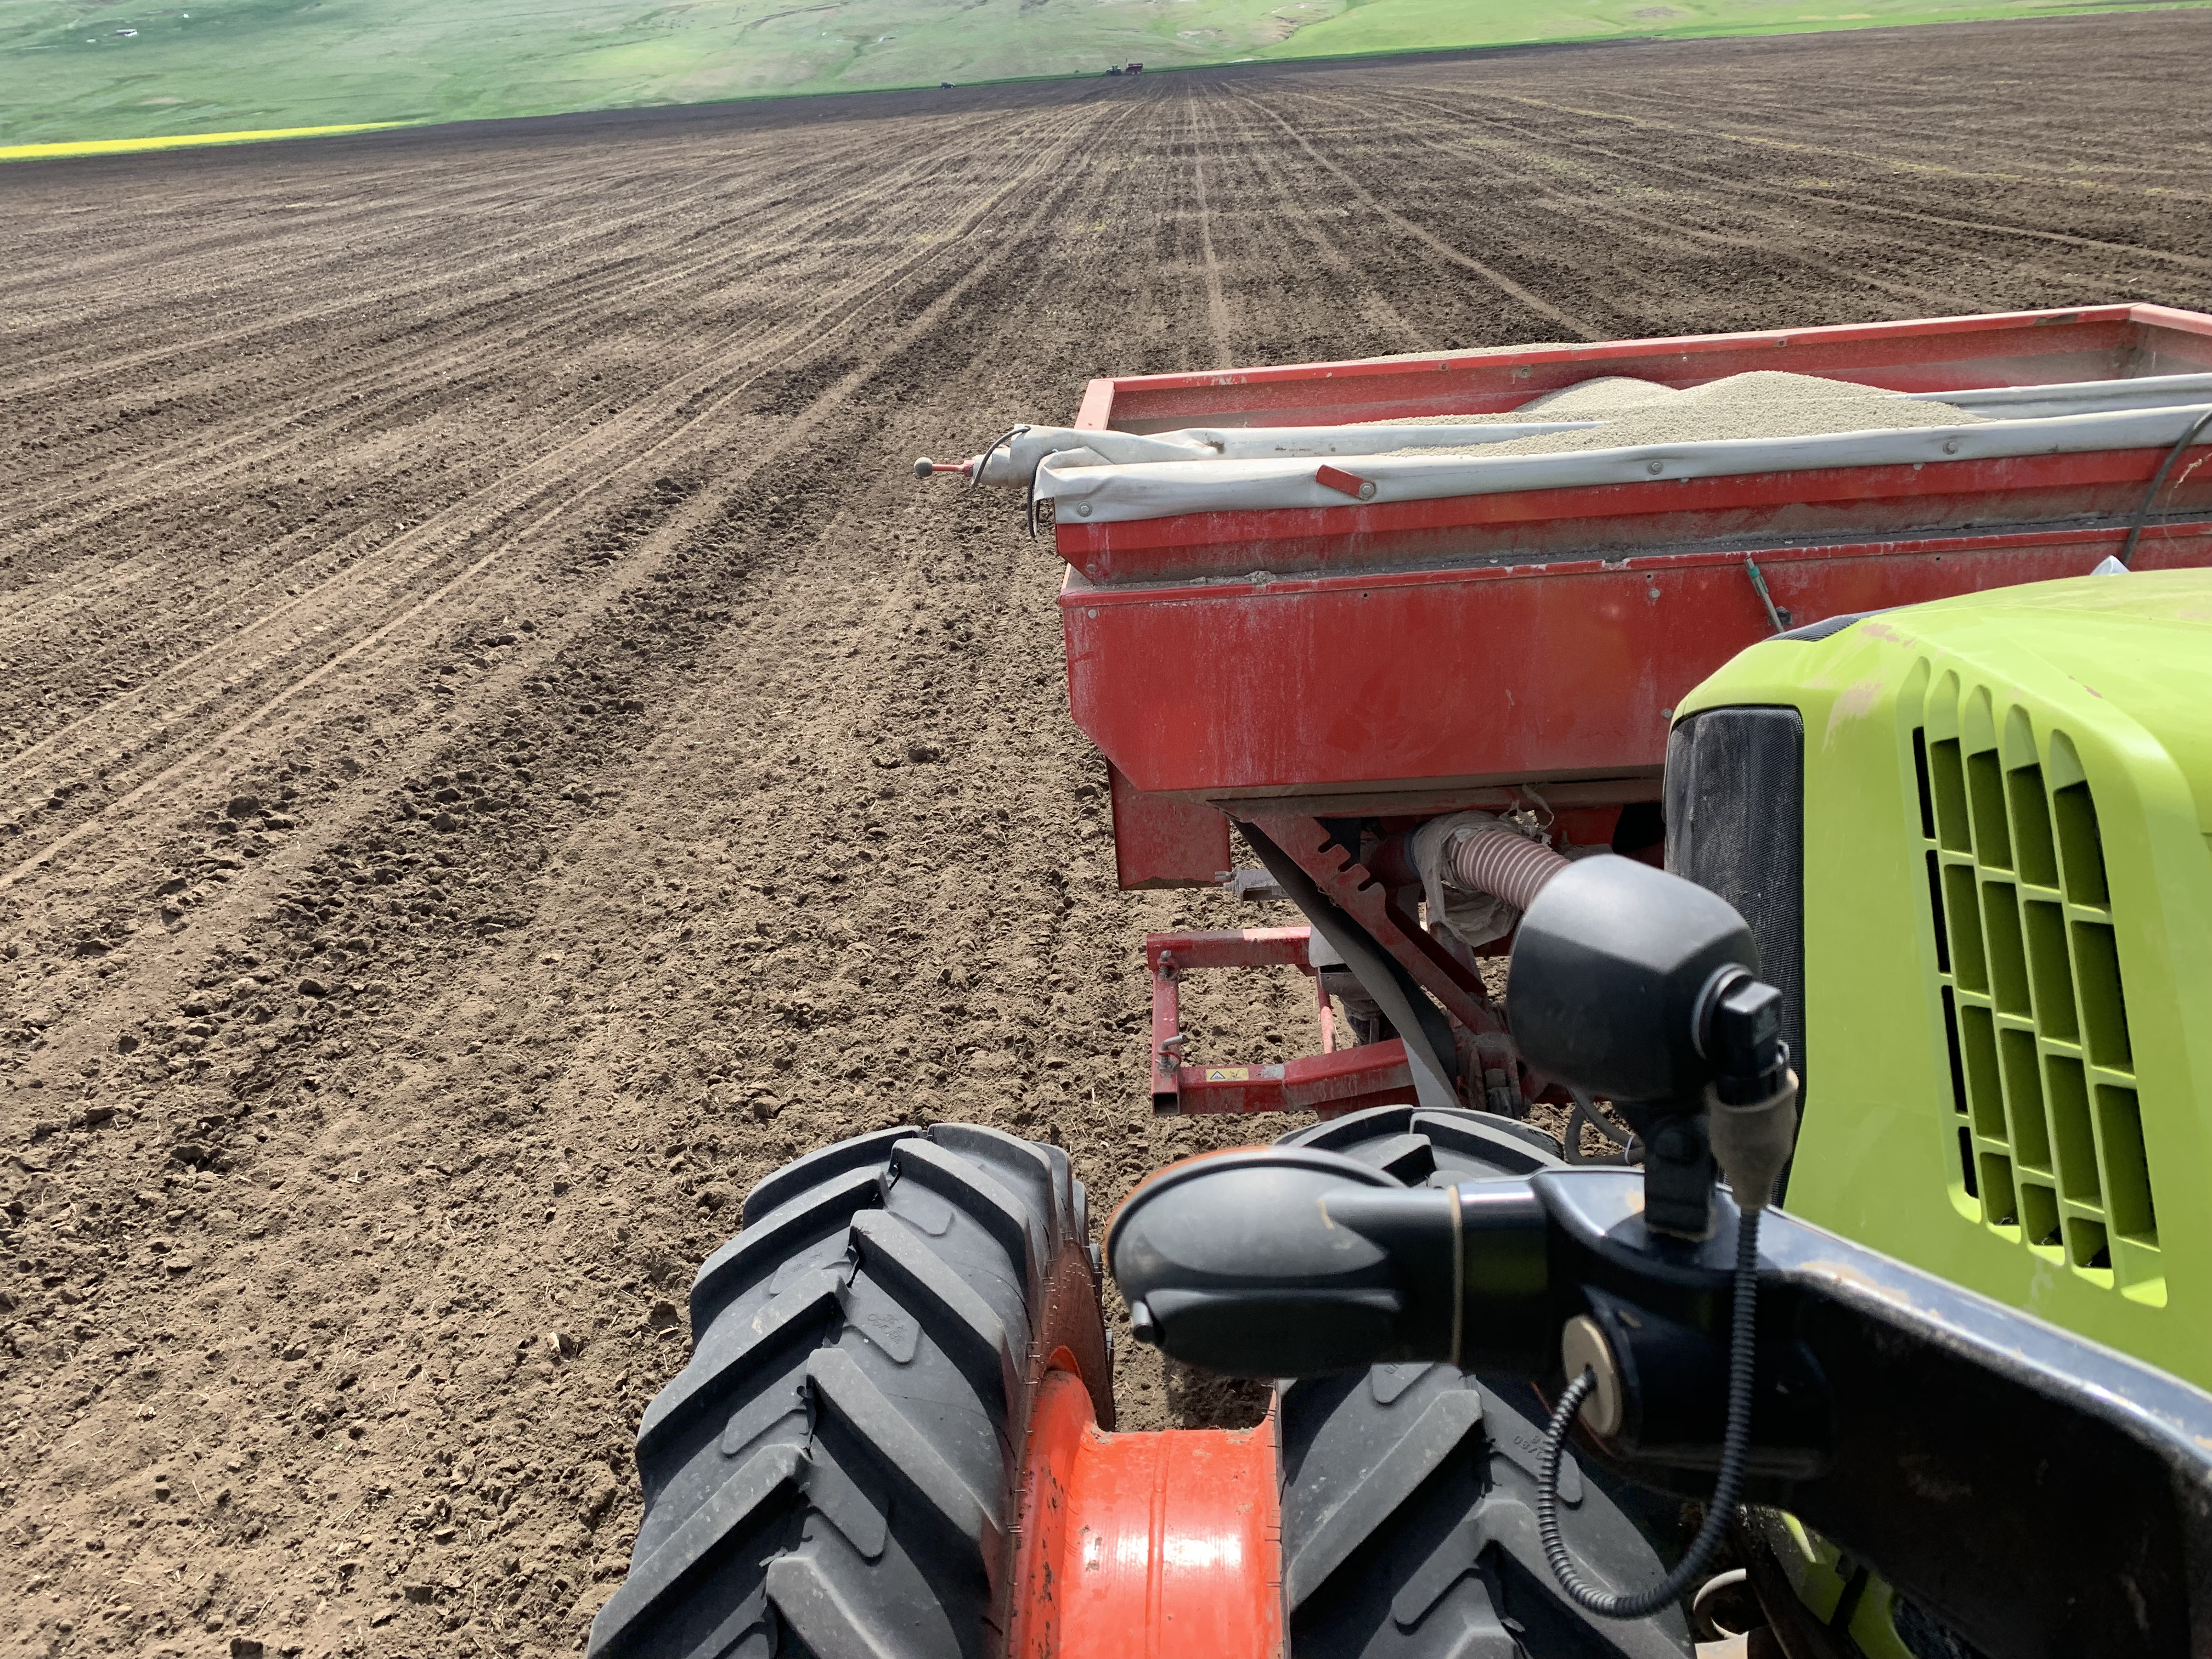 Corn sowing